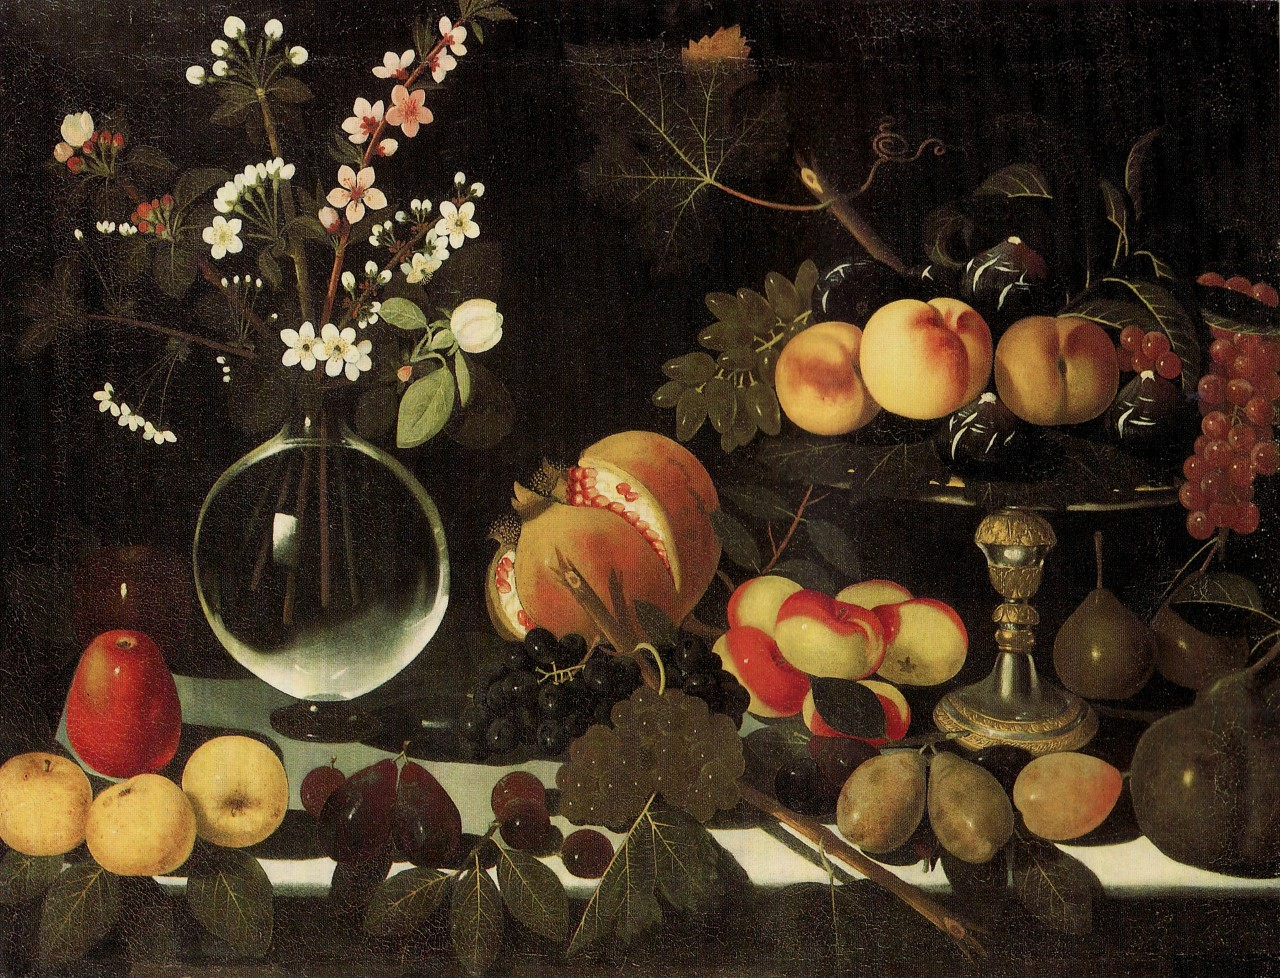 Stilllife painting has existed since time immemorial and offered us some of the most sublimely beautiful painting in art history Yet for centuries it was